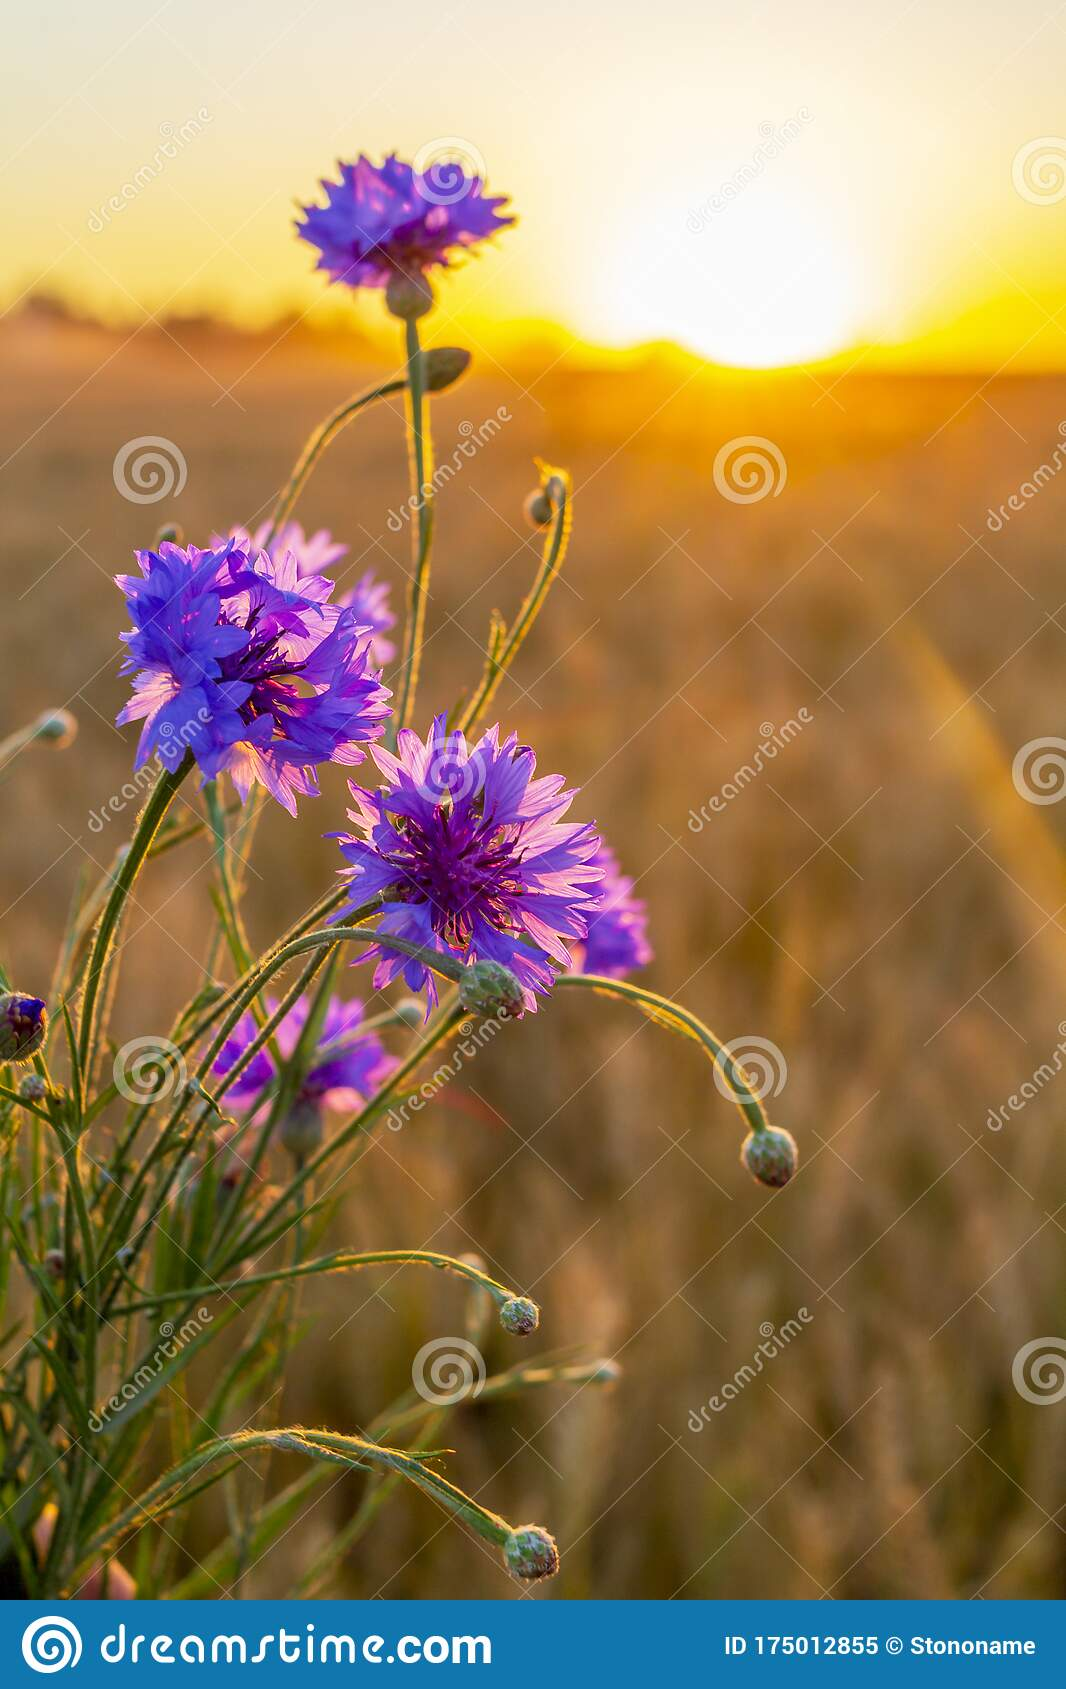 Purple Flowers In The Foreground And A Golden Heat Field At Sunset Golden Sunset Over Wheat Field Stock Image Image Of Orange Crop 175012855